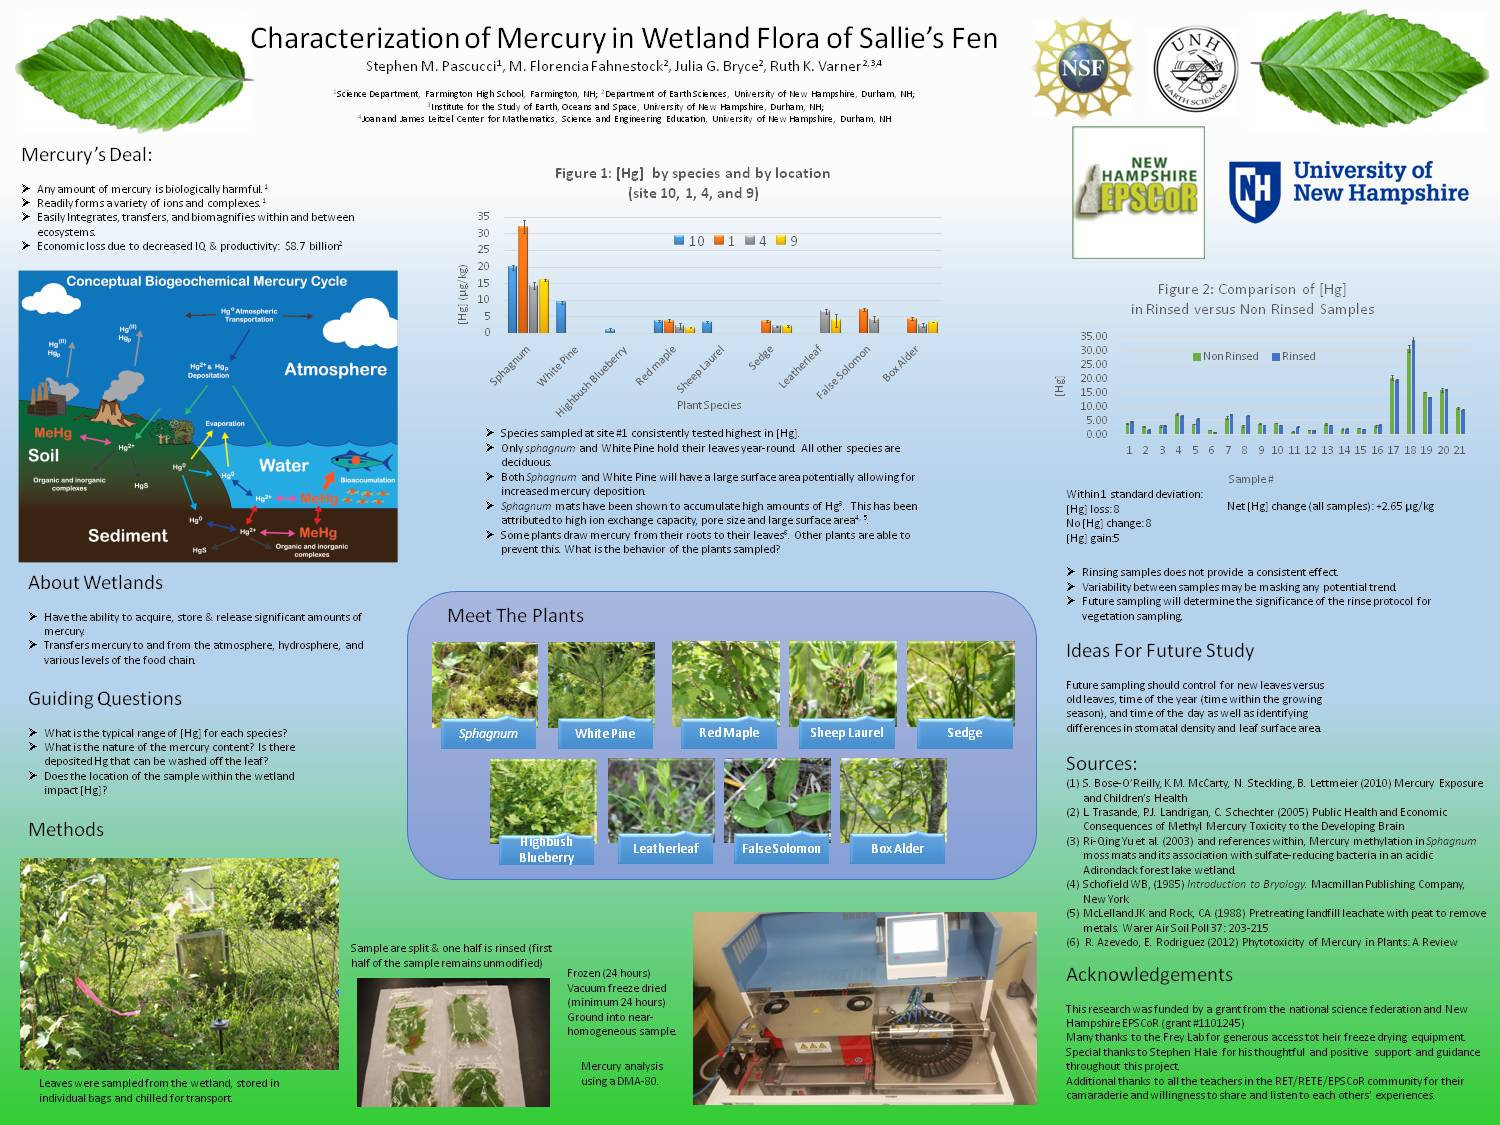 Characterization Of Mercury In Wetland Flora Of Sallie's Fen by StephenPascucci